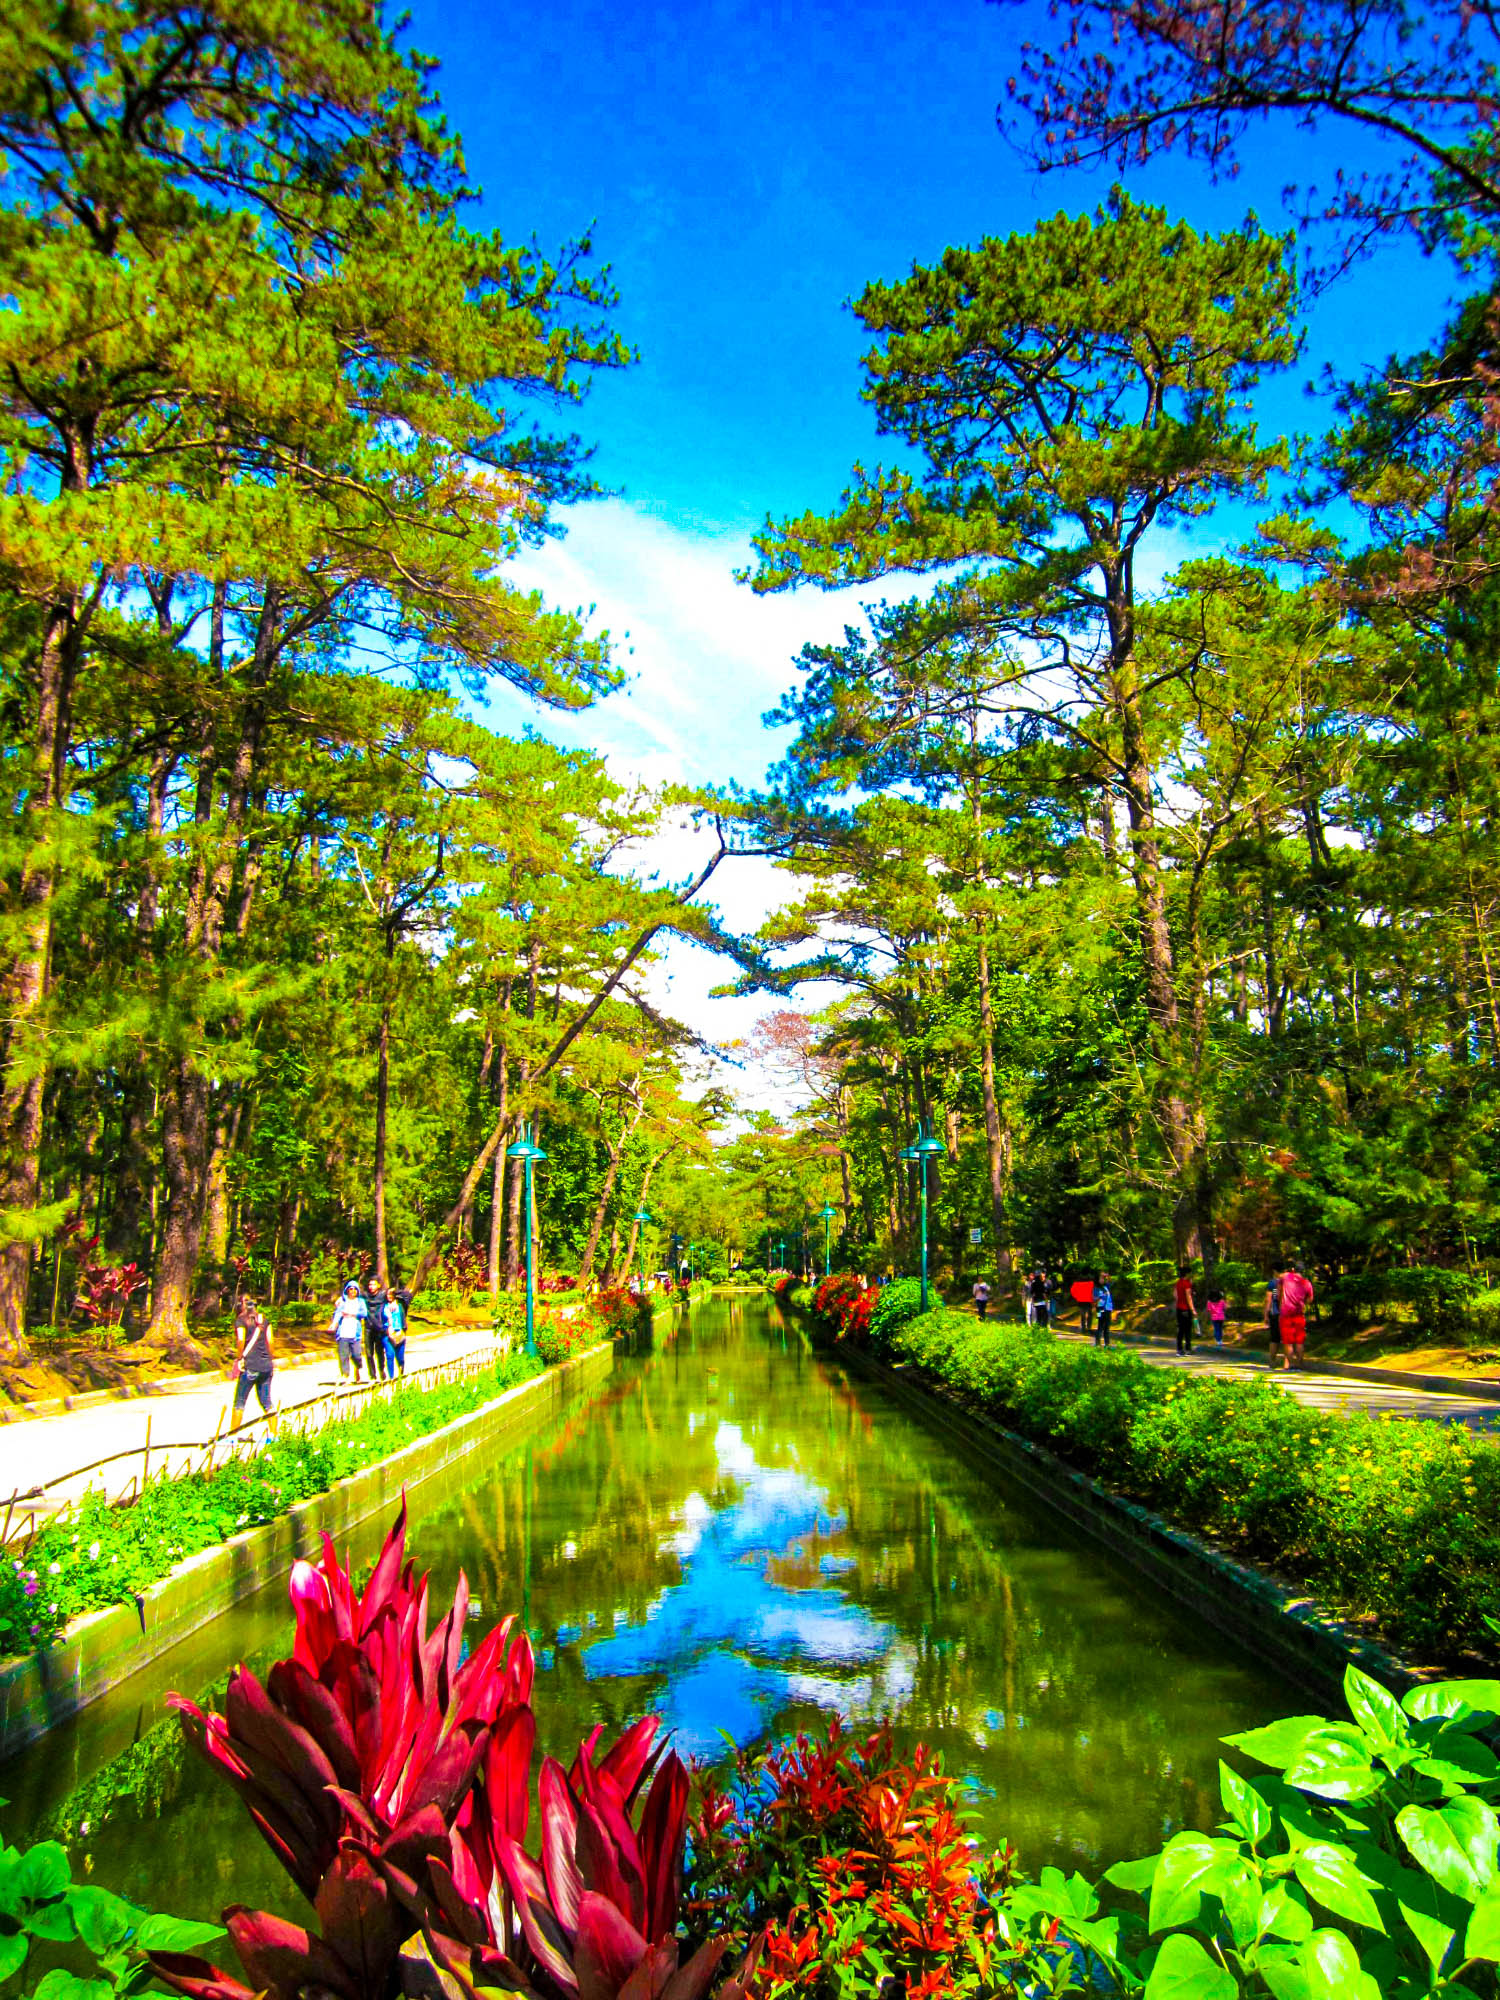 View of a fountain or pool surrounded by hedges, walkways, and further out on the sides, by pine trees in Wright Park, Baguio City